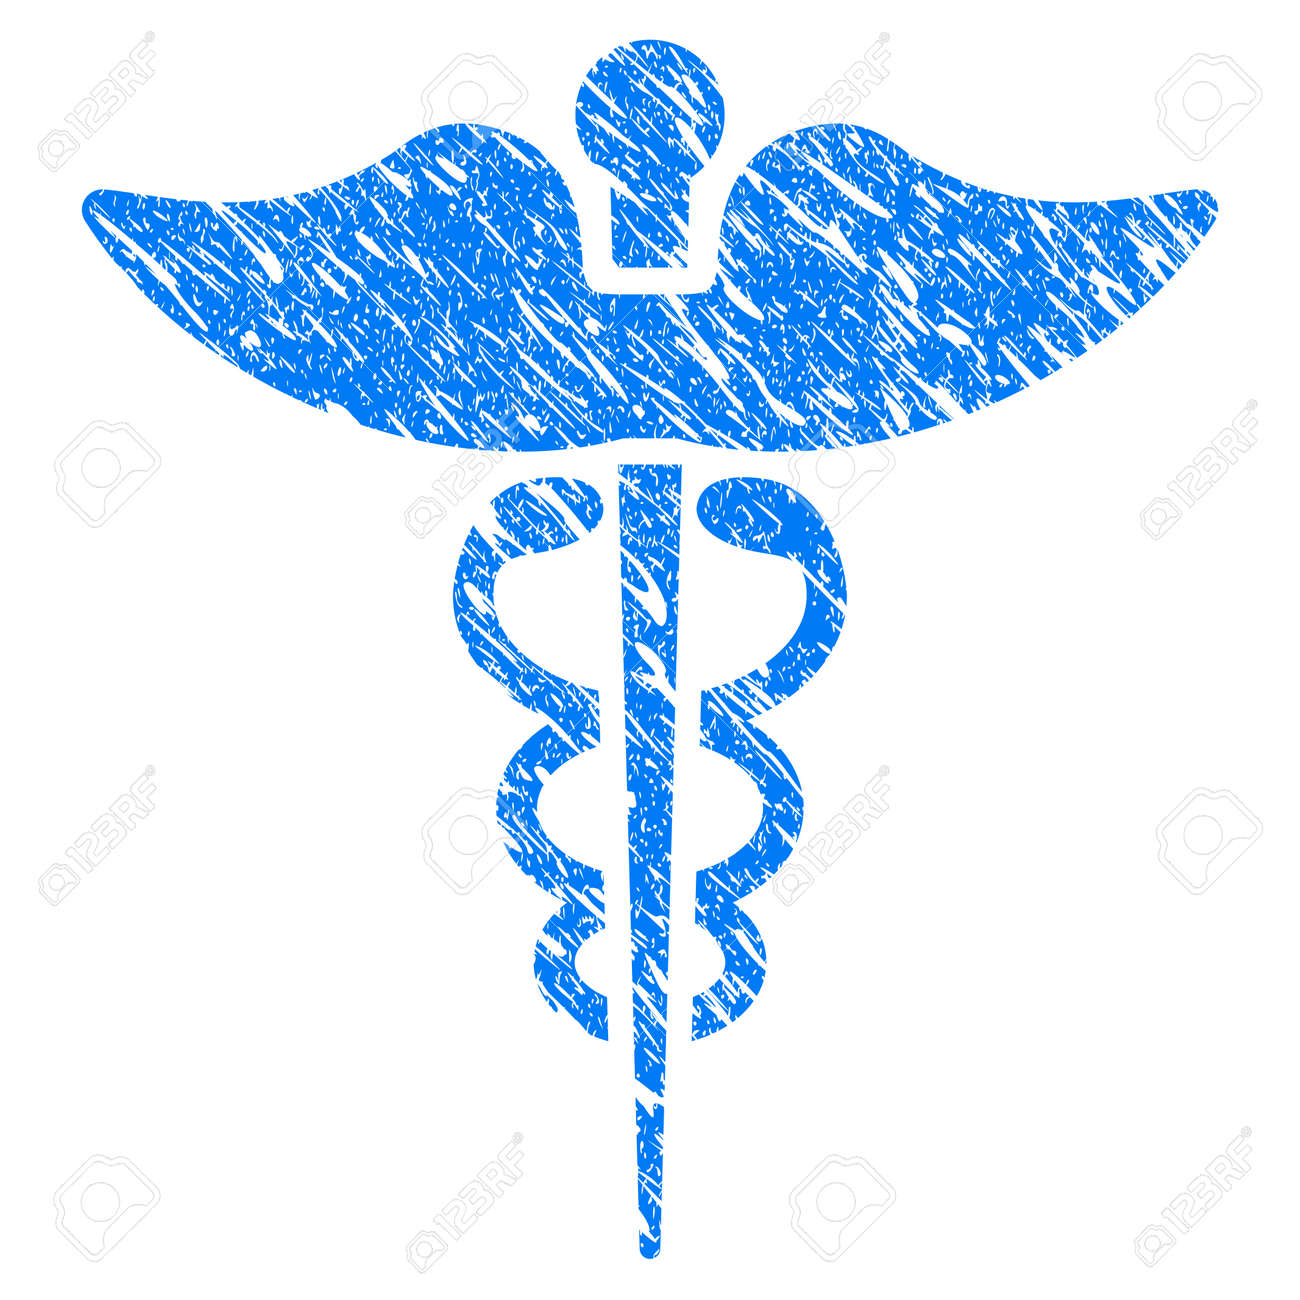 Grunge Medicine Caduceus Symbol Icon With Scratched Design And